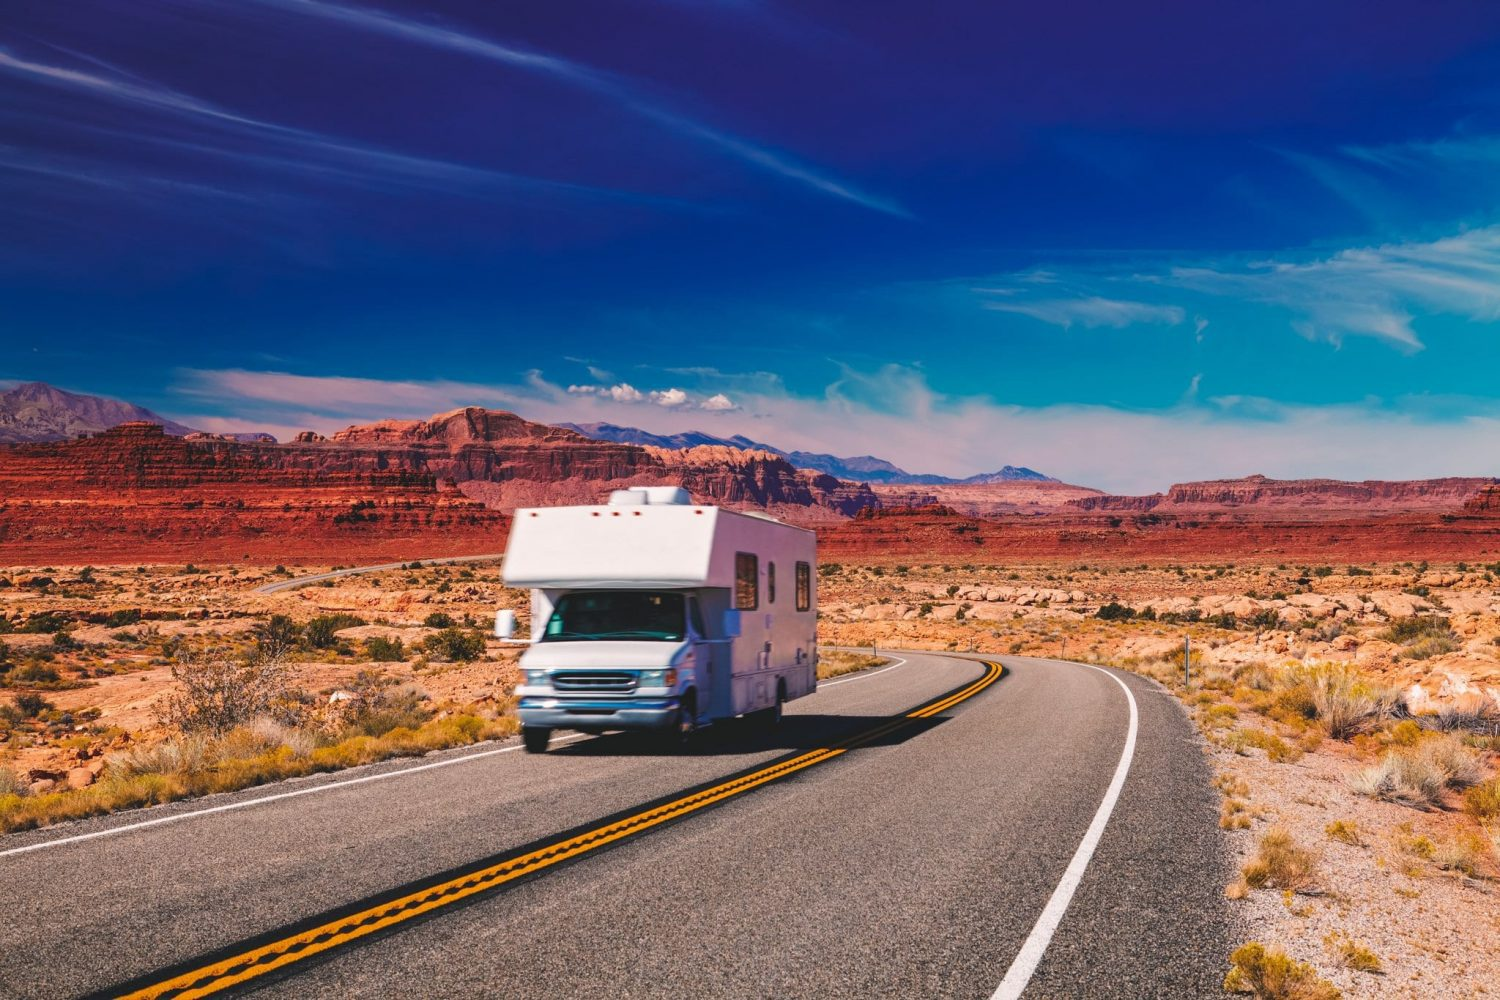 RV Camper driving down the highway on the way to the Grand Canyon